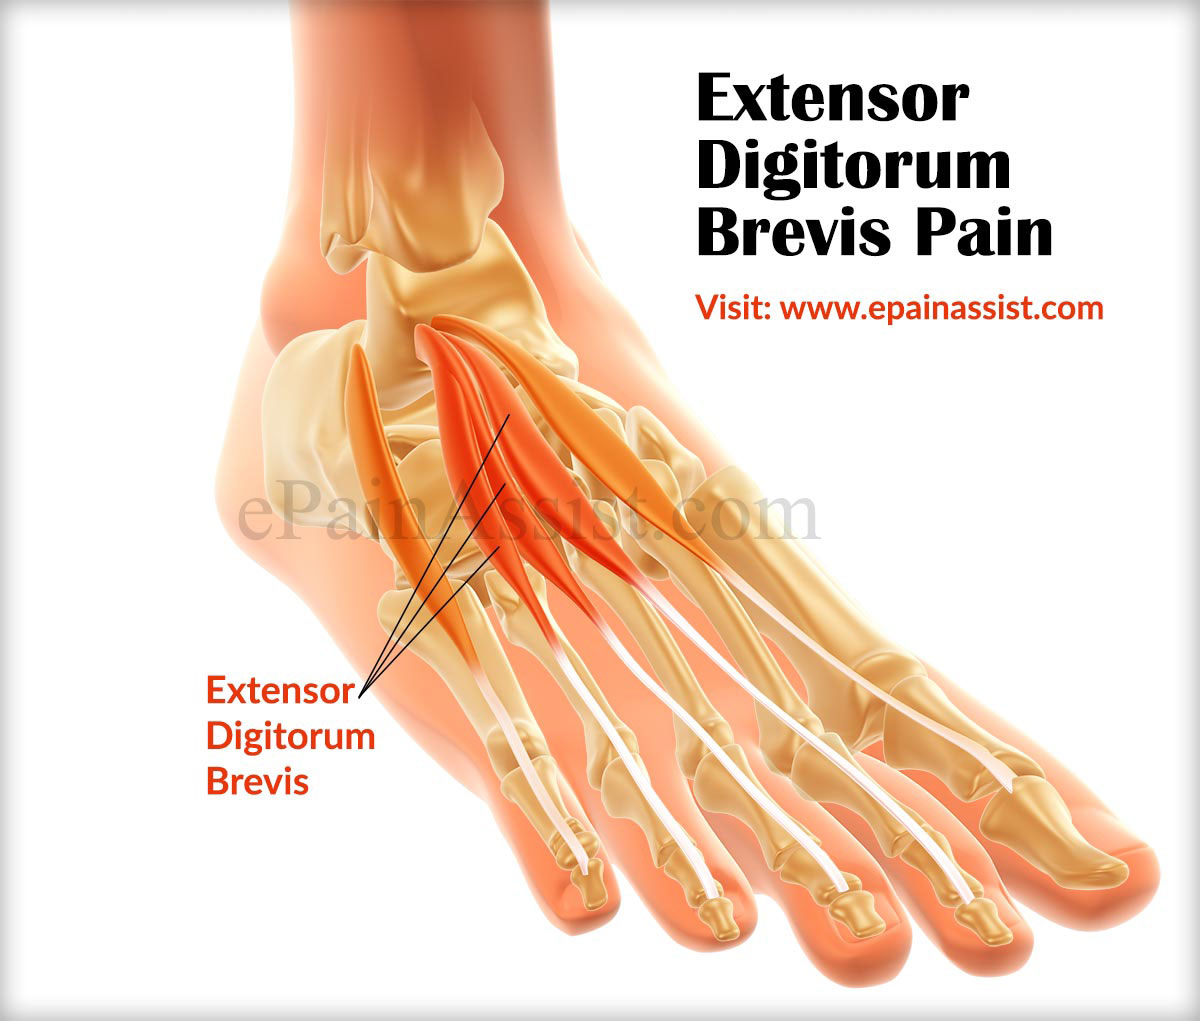 extensor digitorum brevis pain|causes|symptom|treatment, Human Body